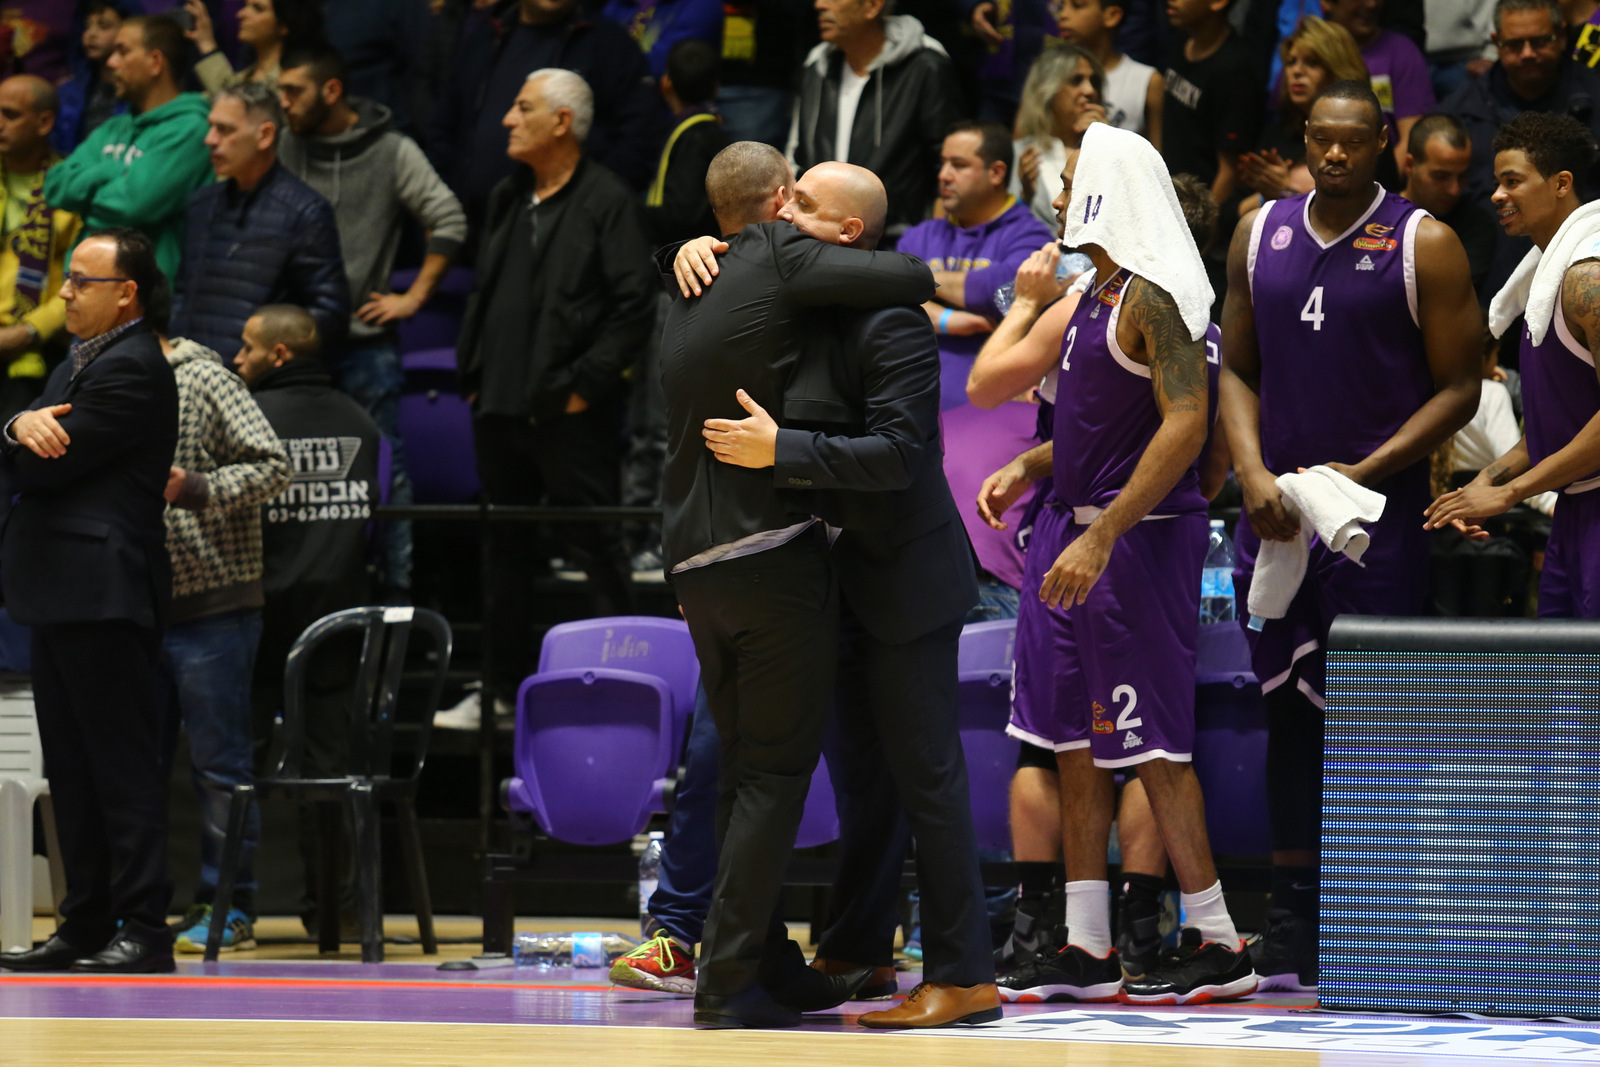 Day 13: Hapoel Holon - Ironi Nahariya ...